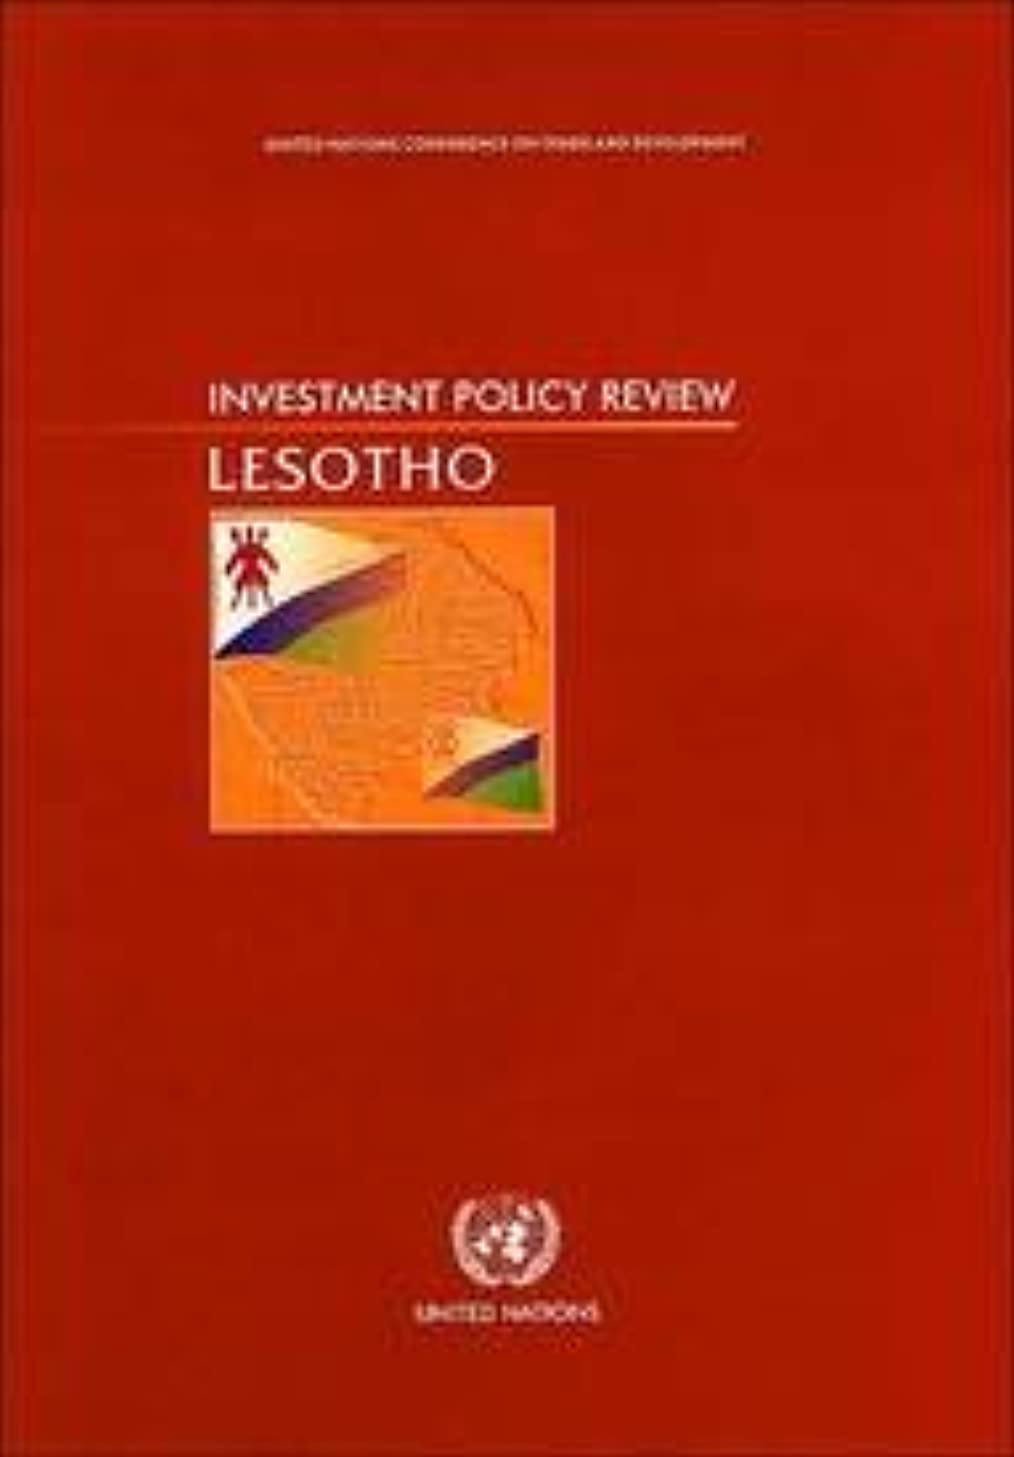 Investment Policy Review: Lesotho